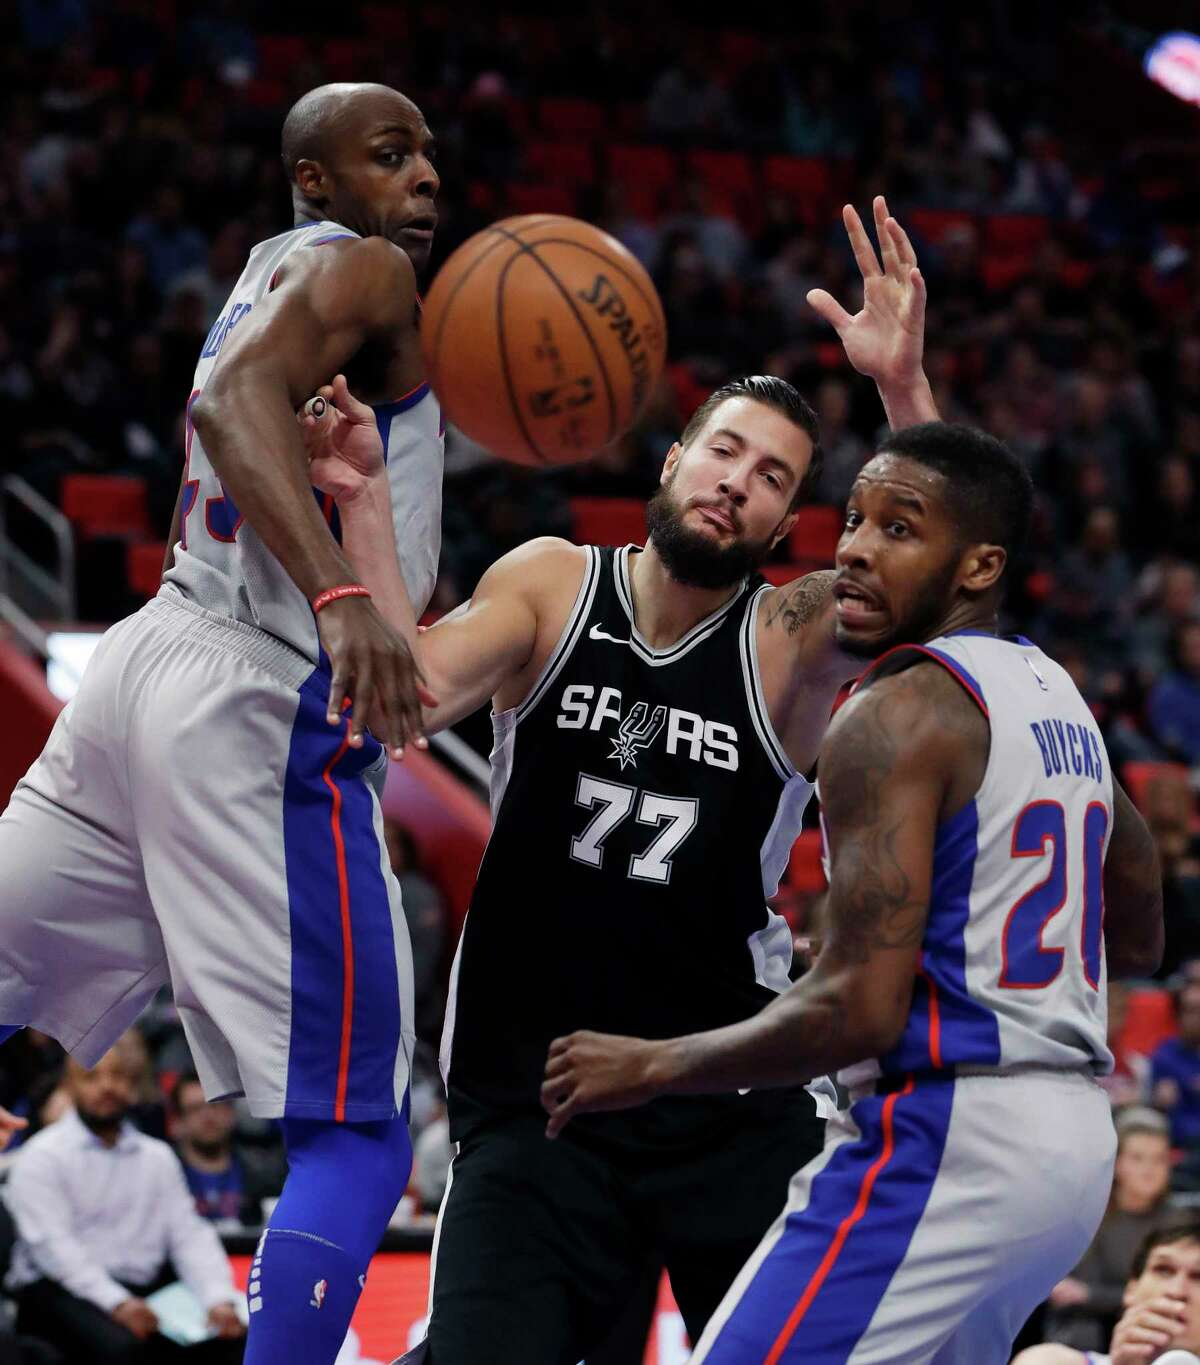 San Antonio Spurs center Joffrey Lauvergne (77) and Detroit Pistons forward Anthony Tolliver, left, and guard Dwight Buycks (20) follow the loose ball during the first half of an NBA basketball game, Saturday, Dec. 30, 2017, in Detroit. (AP Photo/Carlos Osorio)